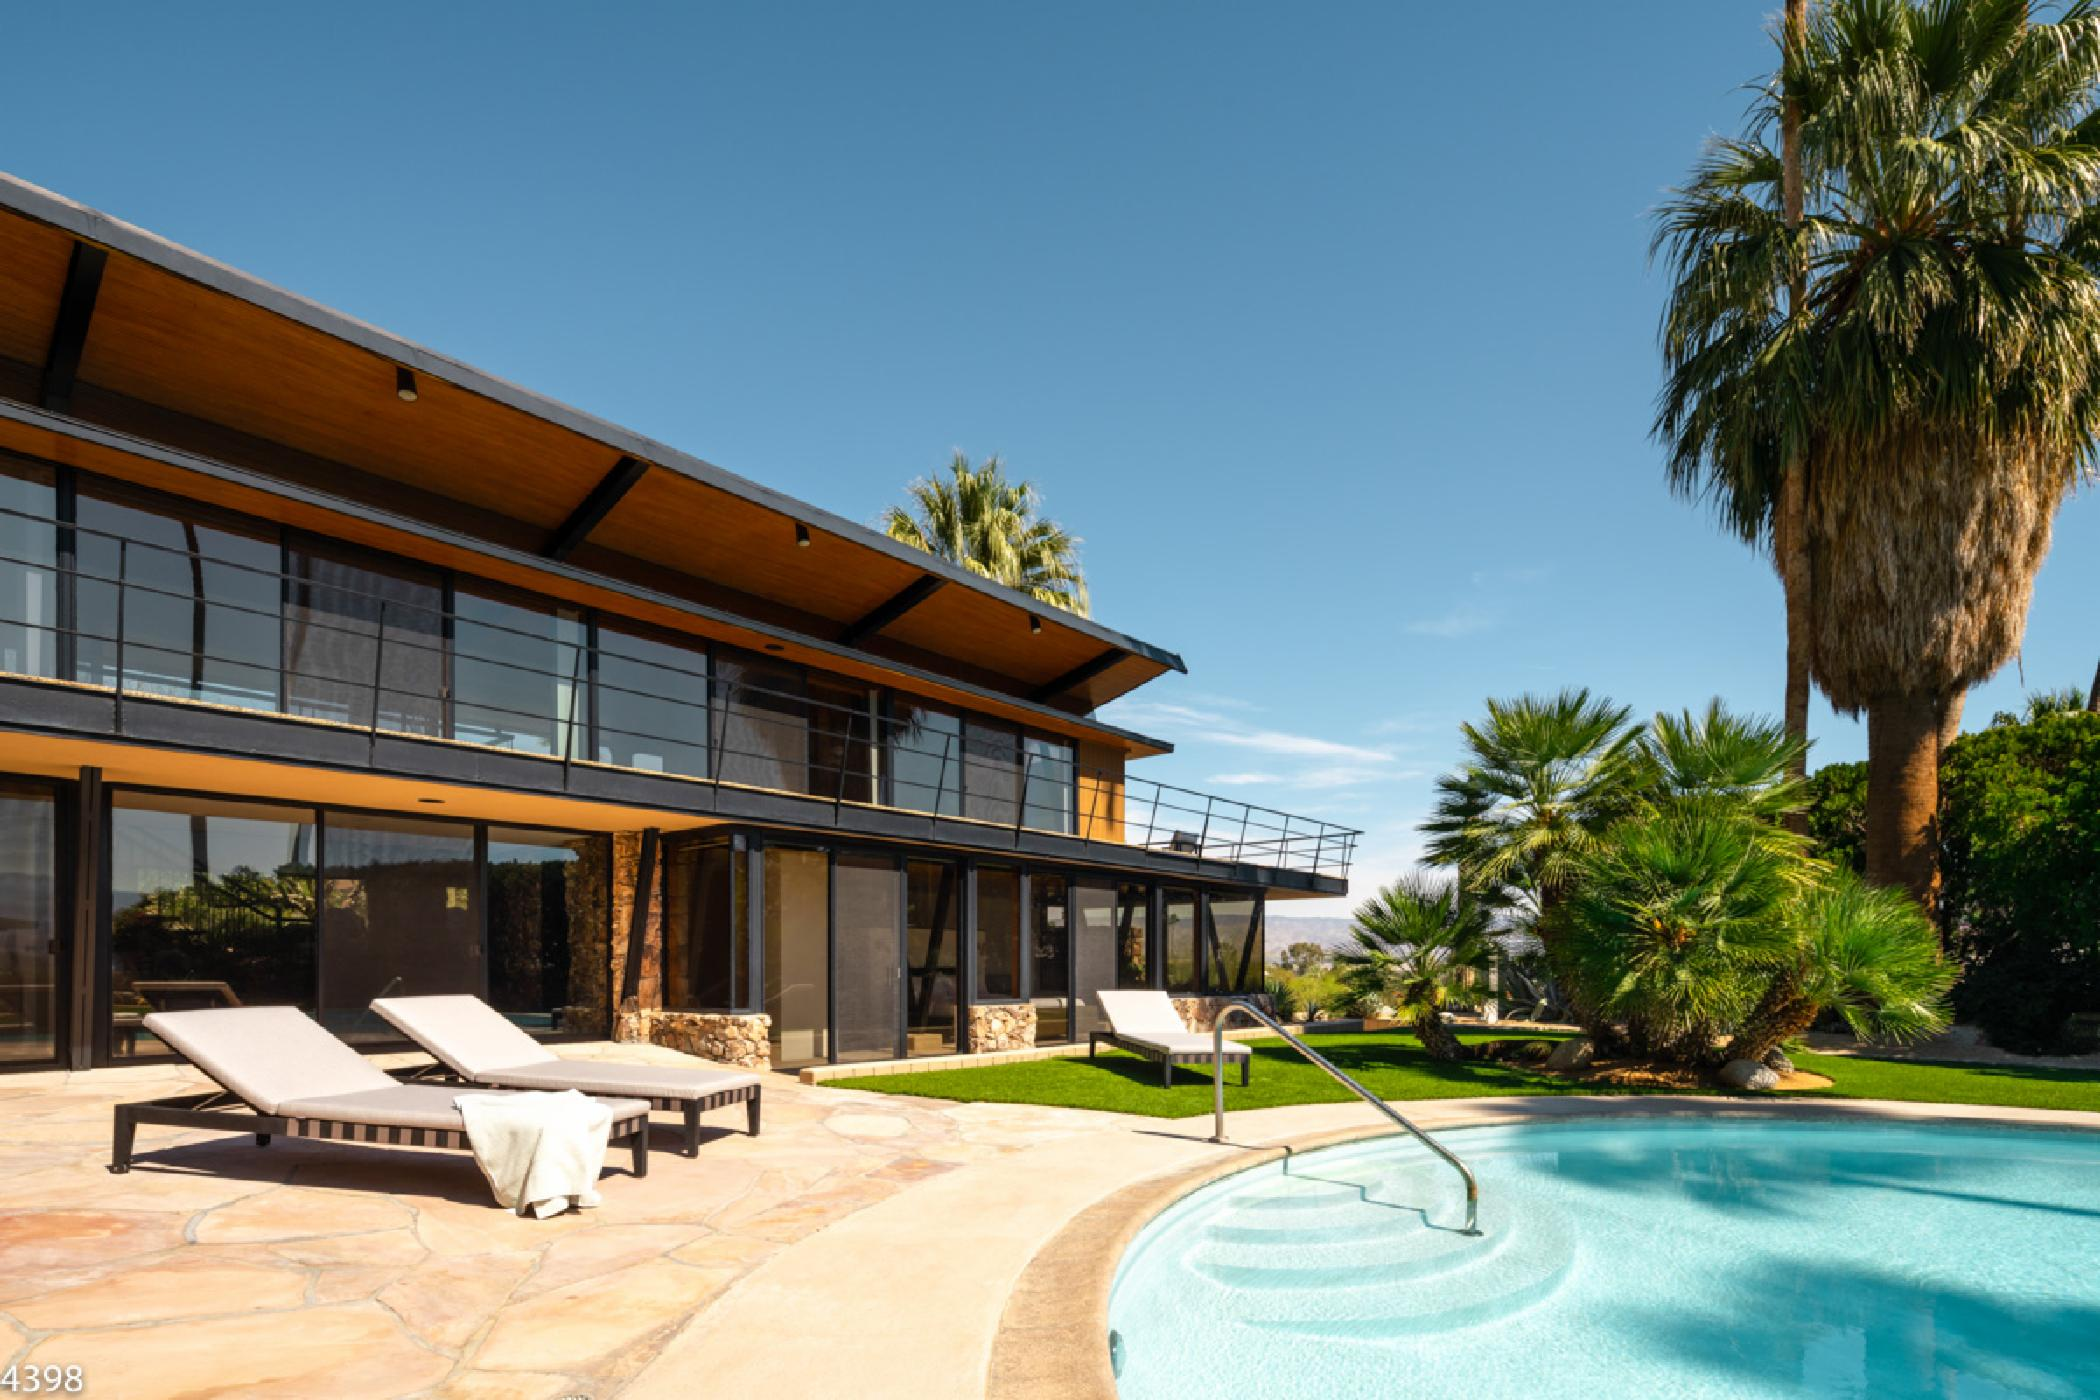 Notable Modern Estate with Beautiful Interior and Circular Pool